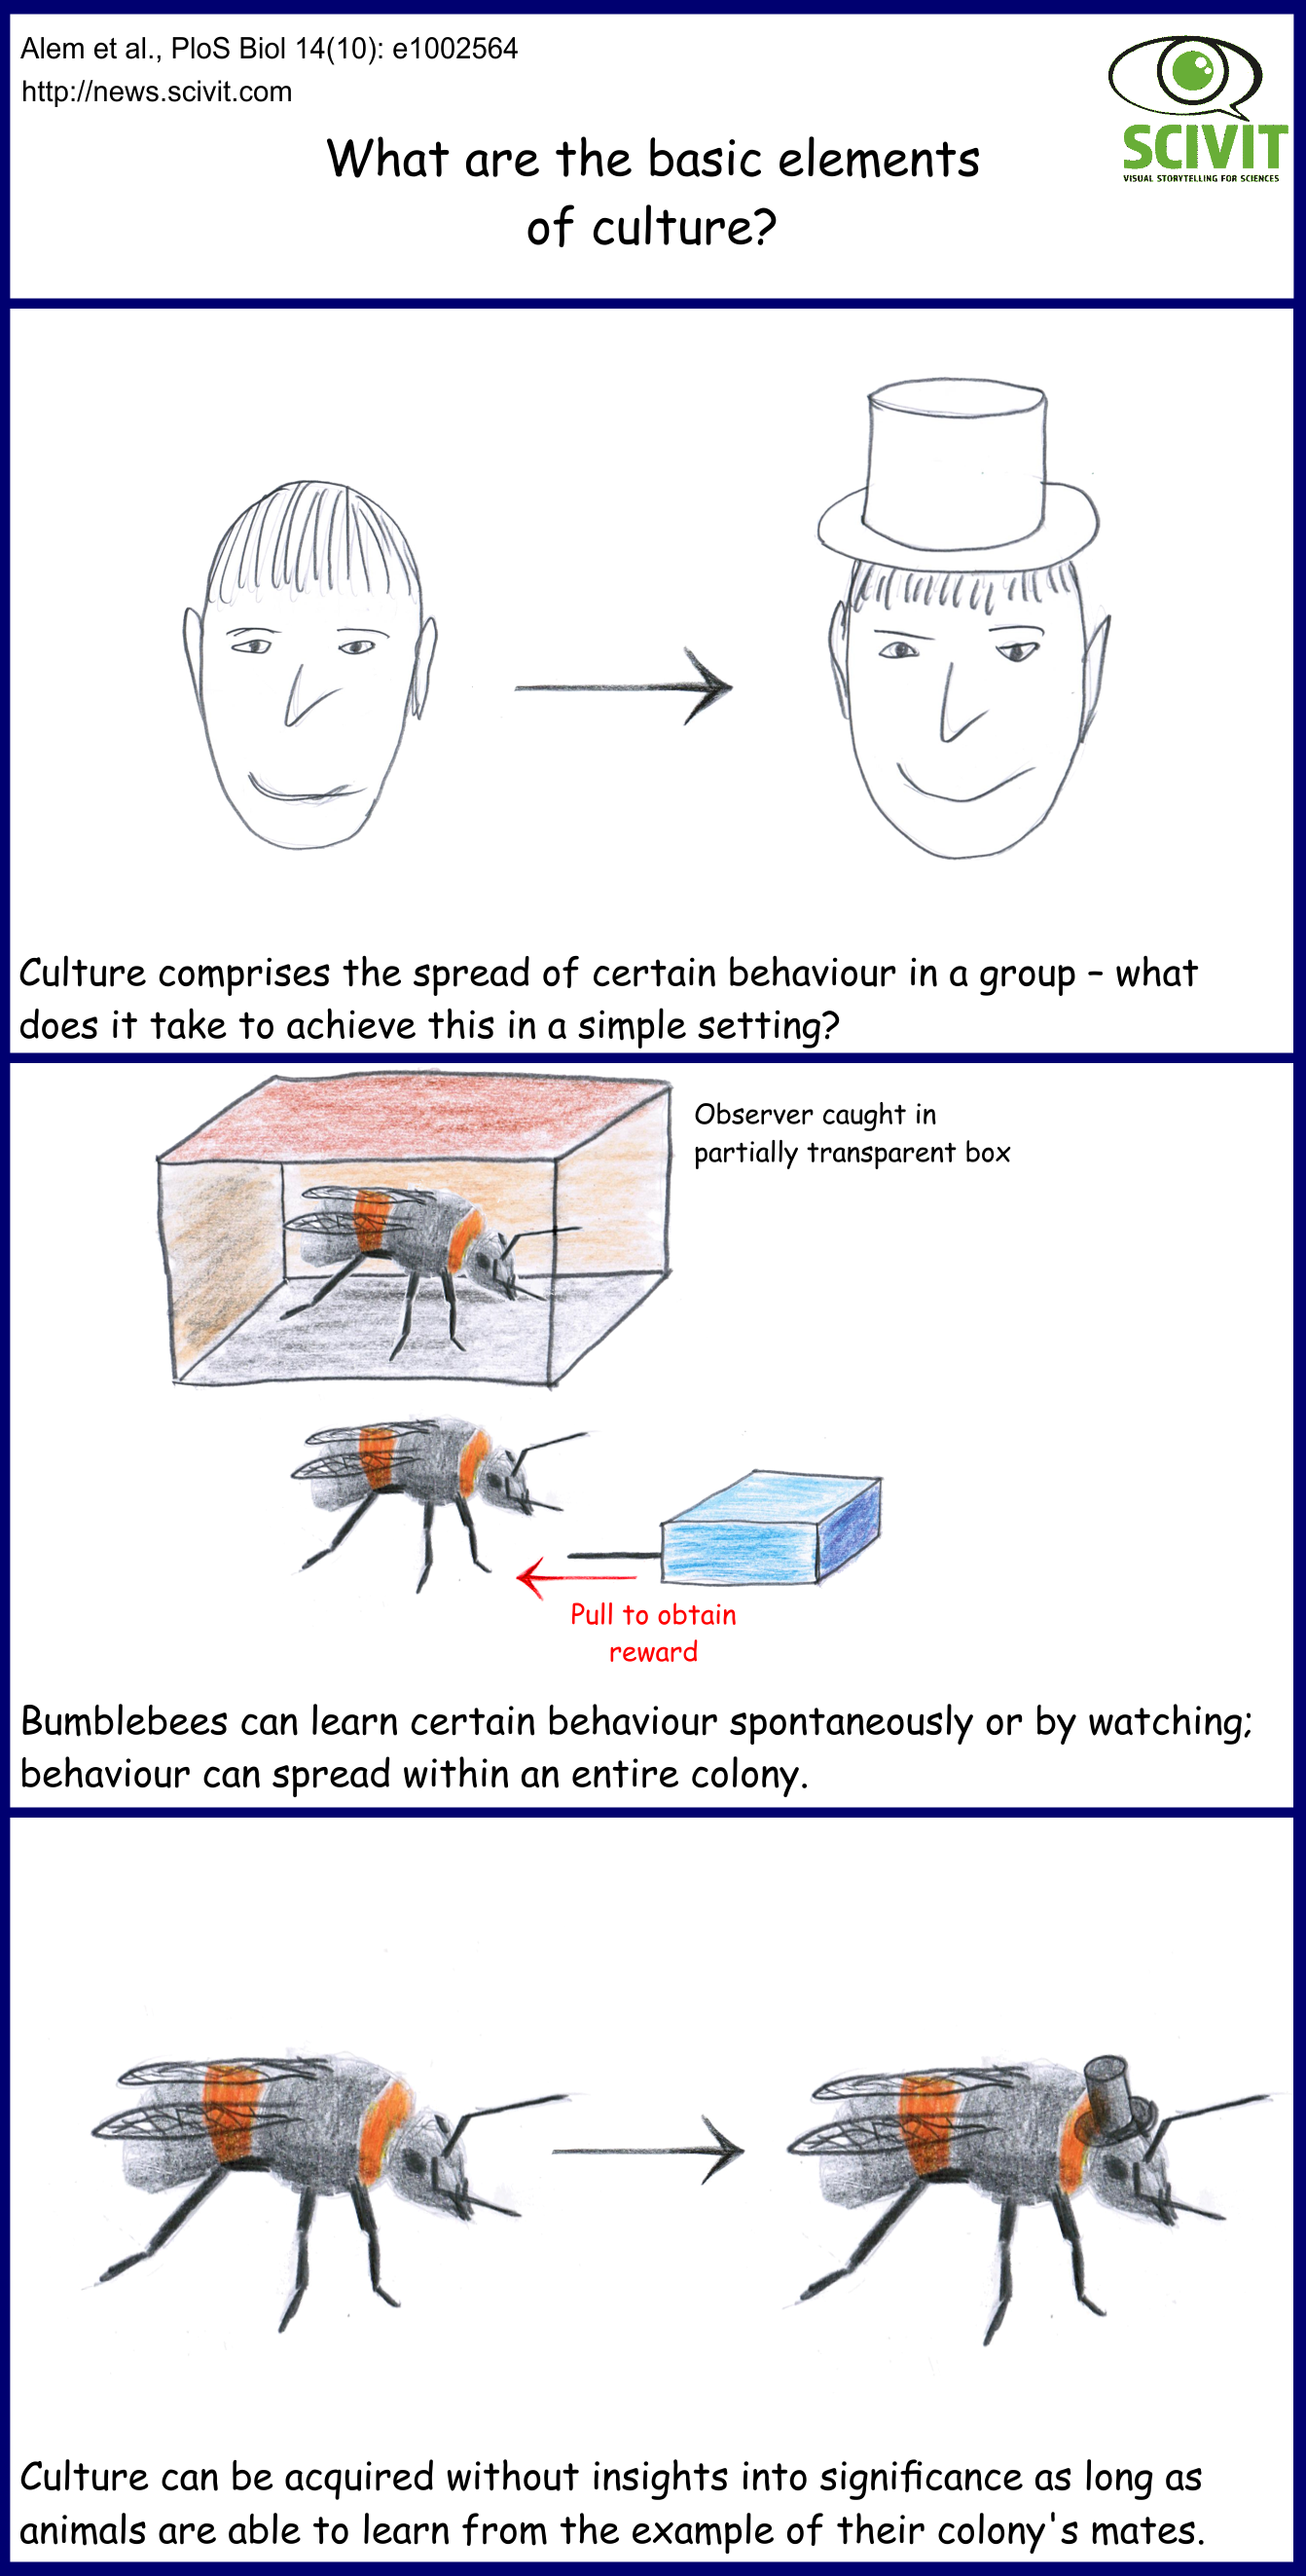 What are the basic elements of culture?